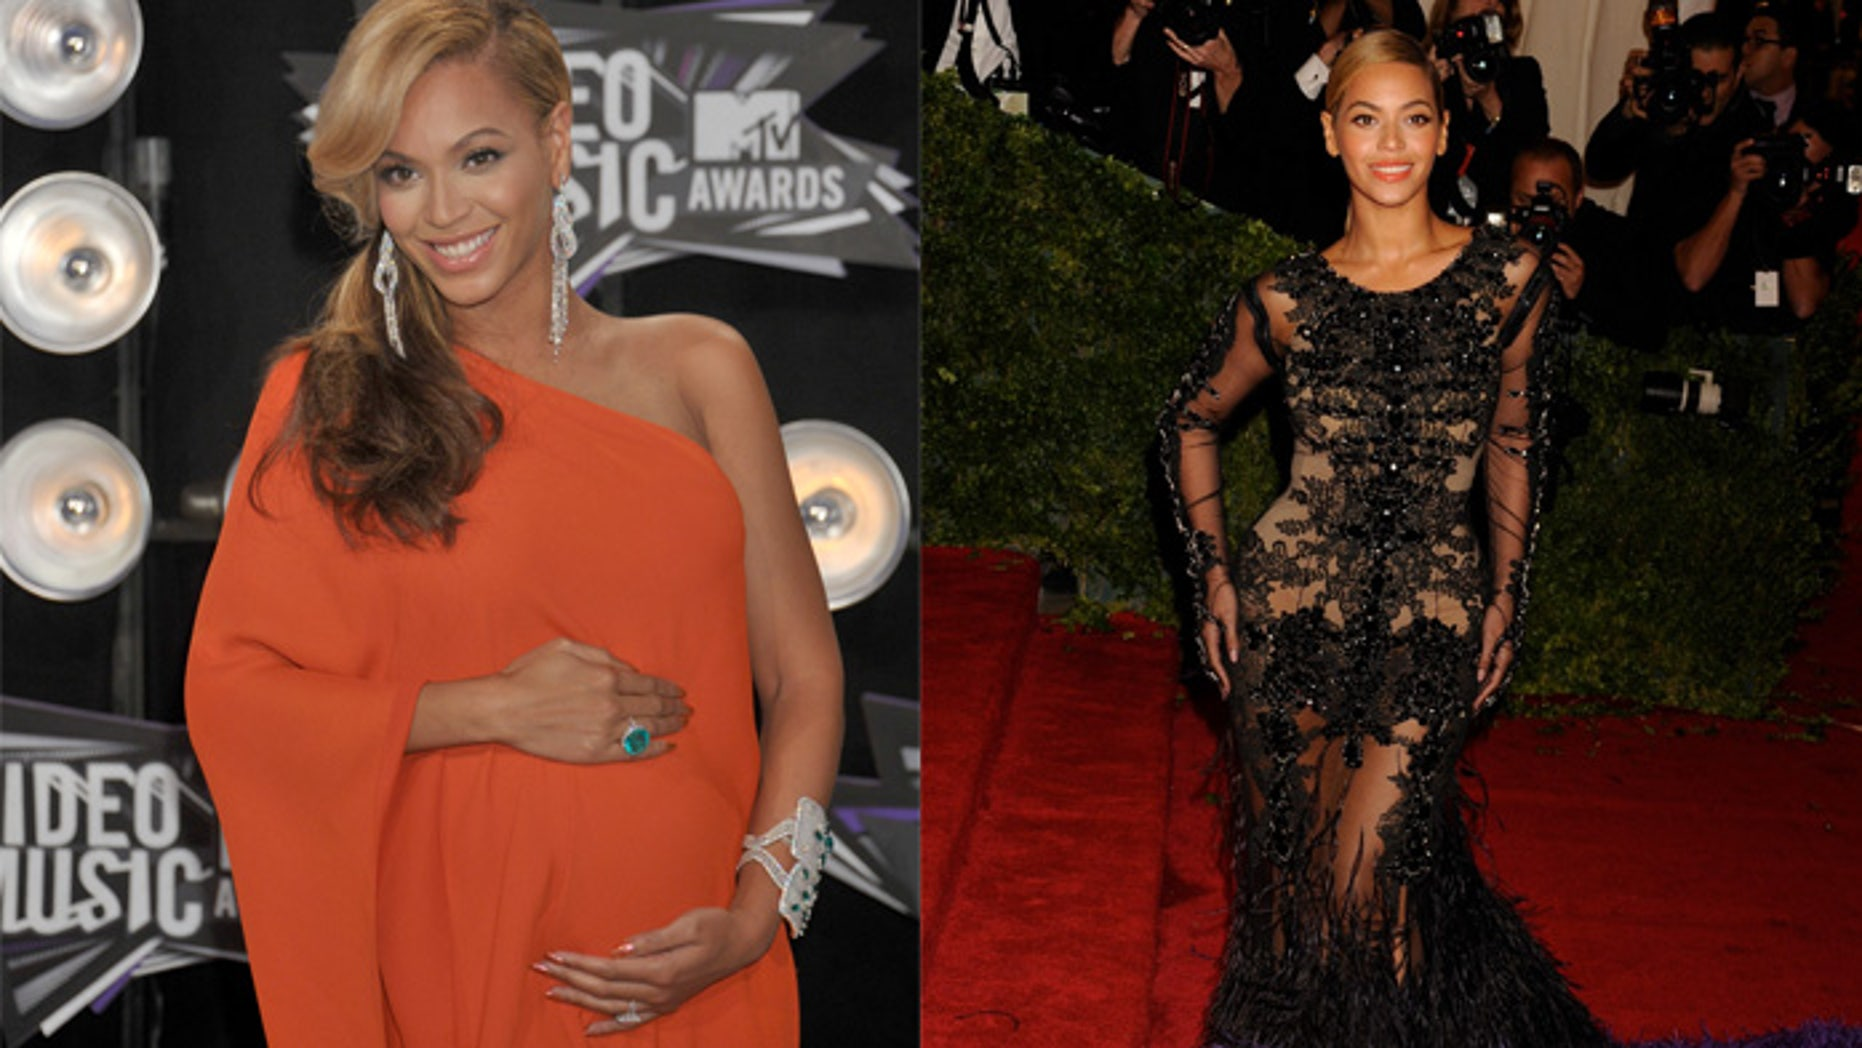 Beyoncé while pregnant (left) and post-pregnancy (right) at the Costume Institute Gala at The Metropolitan Museum of Art May 7, 2012